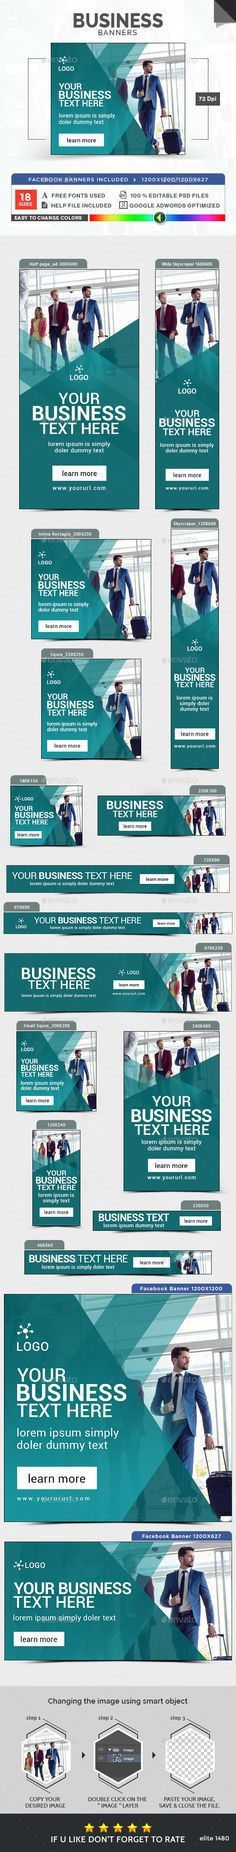 Corporate Banners | Promotional banners, Banners and Photoshop